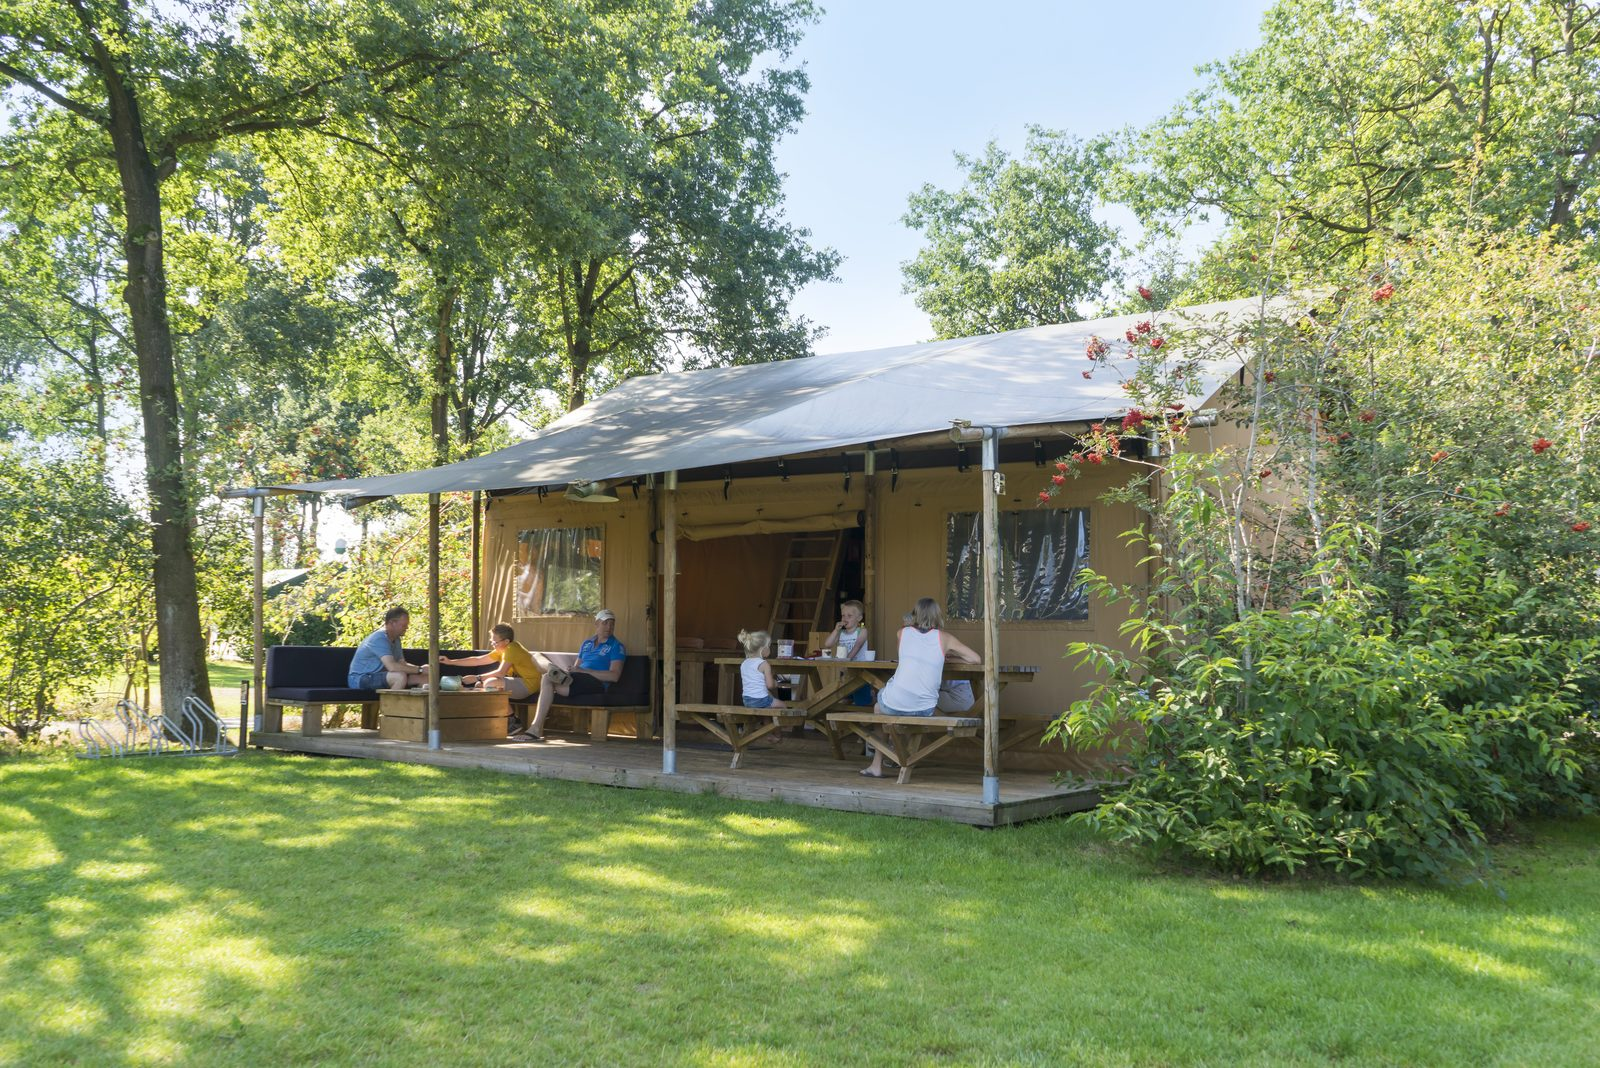 Renting a safari tent The Netherlands